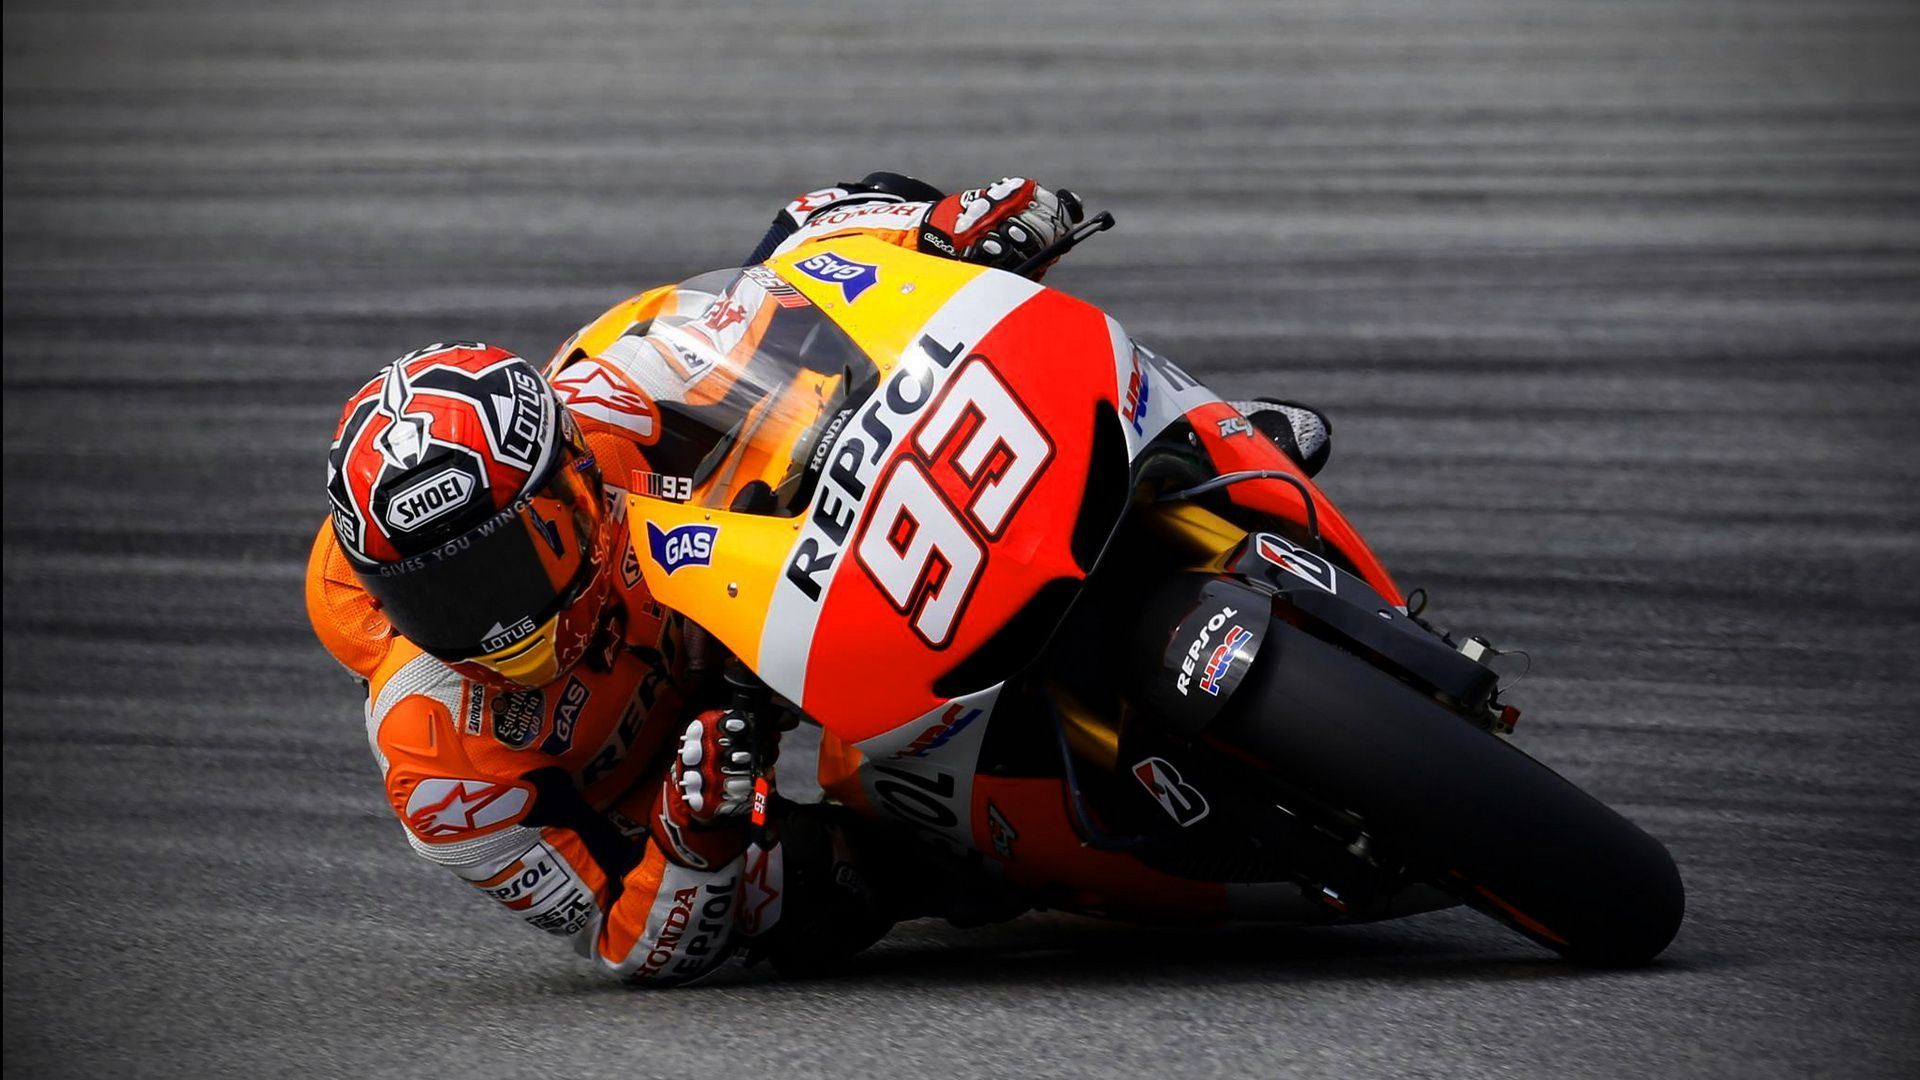 Motogp Wallpaper